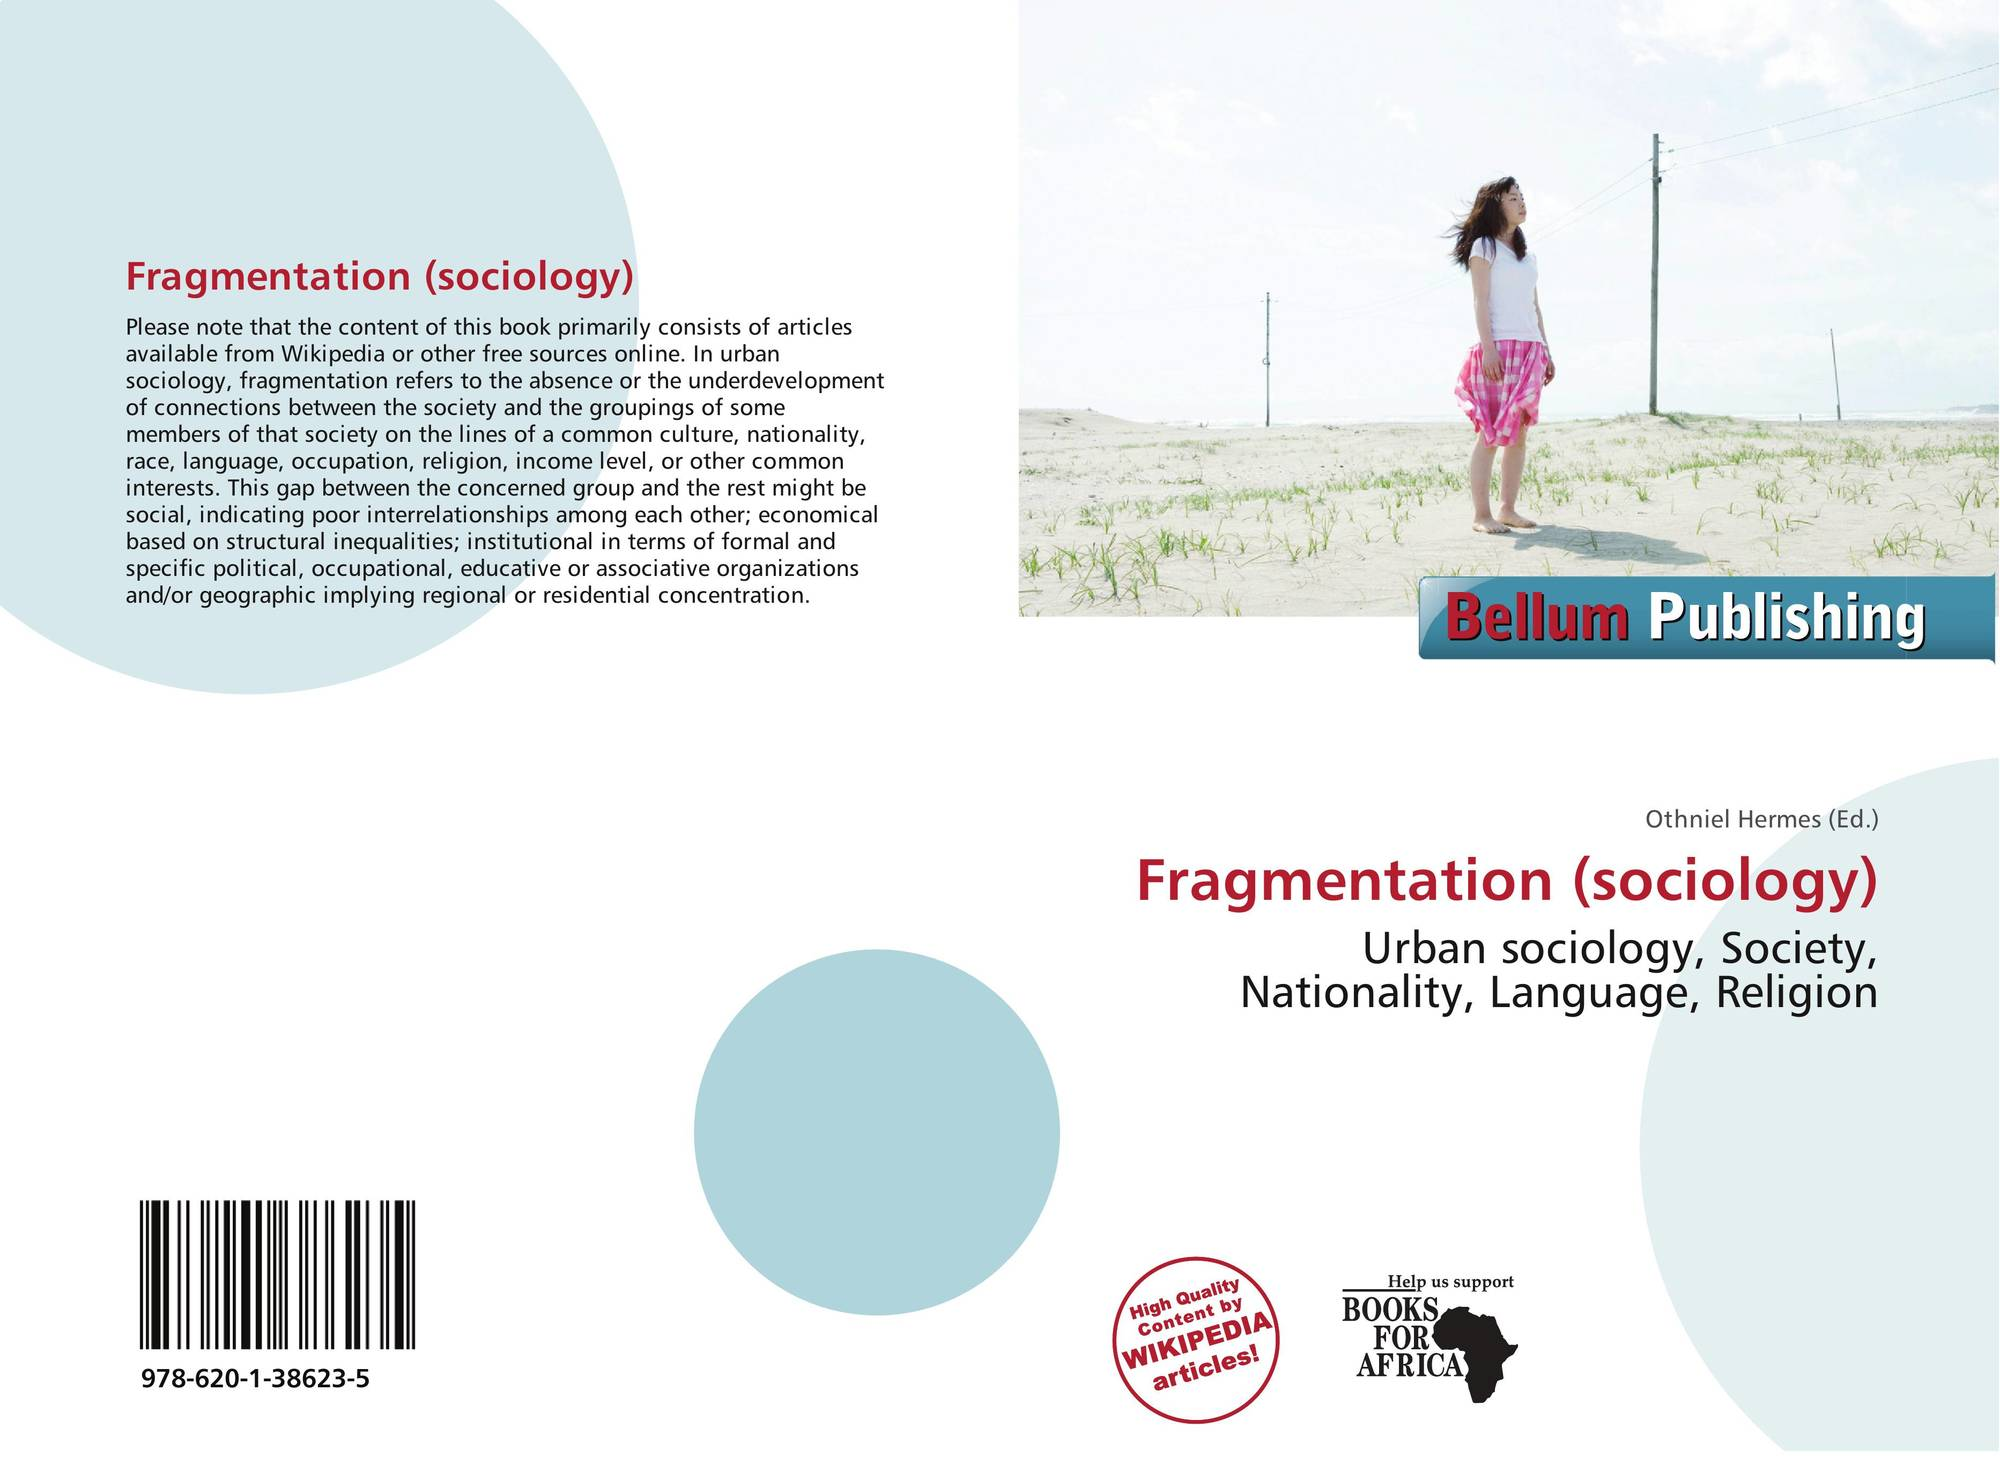 fragmentation of society The effects of inequality, fragmentation, and social capital on collective action in a homogeneous society: analyzing responses to the 2005 japan census.